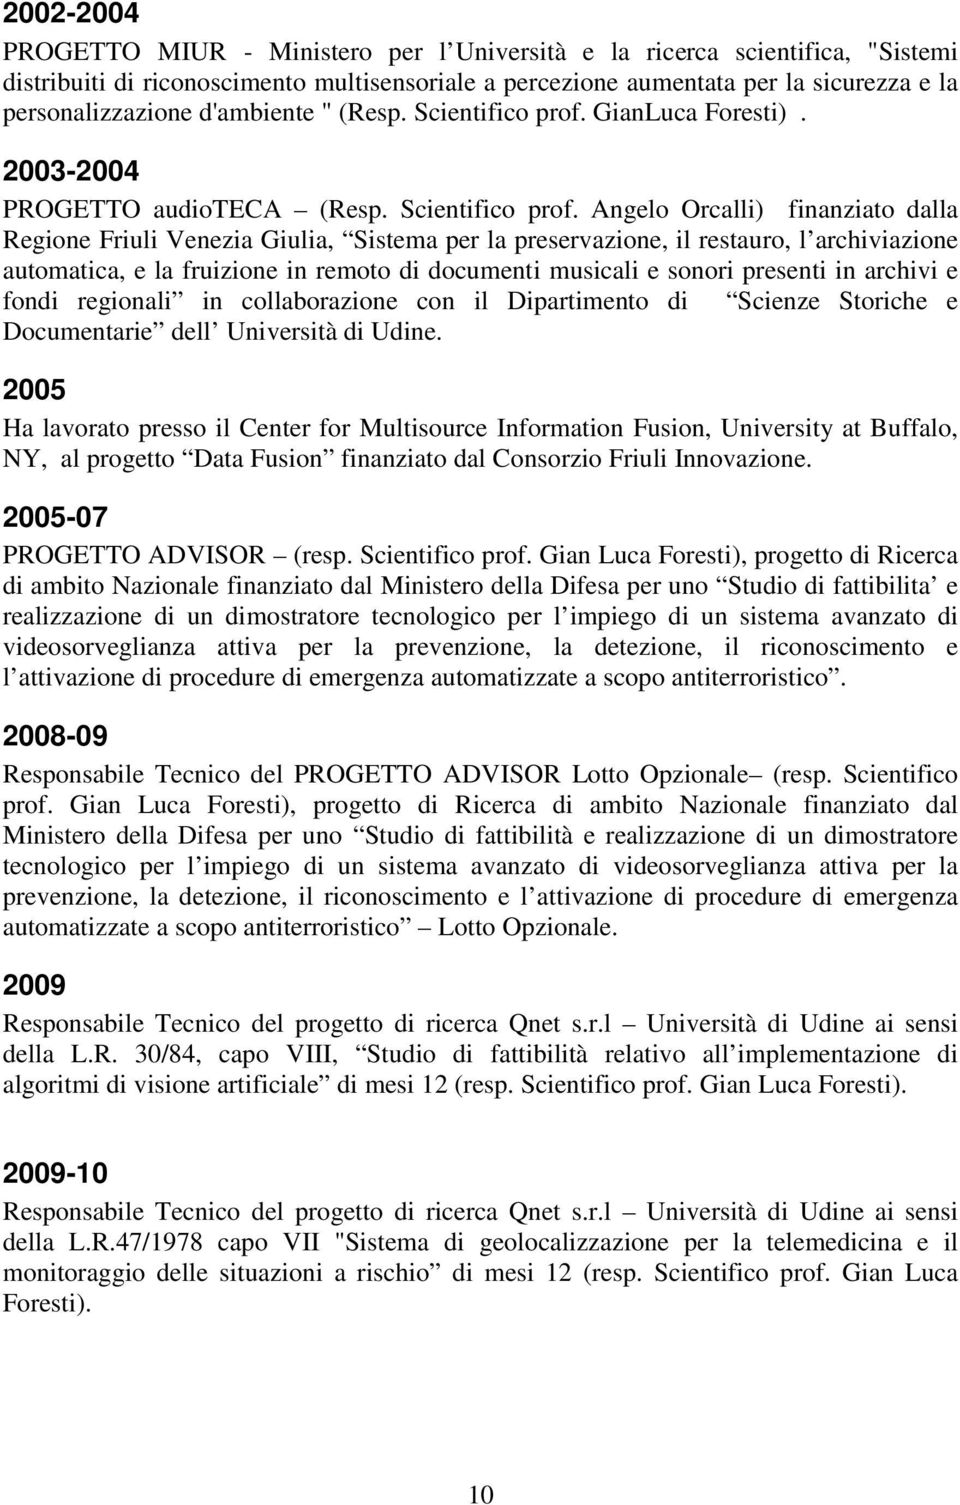 GianLuca Foresti). 2003-2004 PROGETTO audioteca (Resp. Scientifico prof.